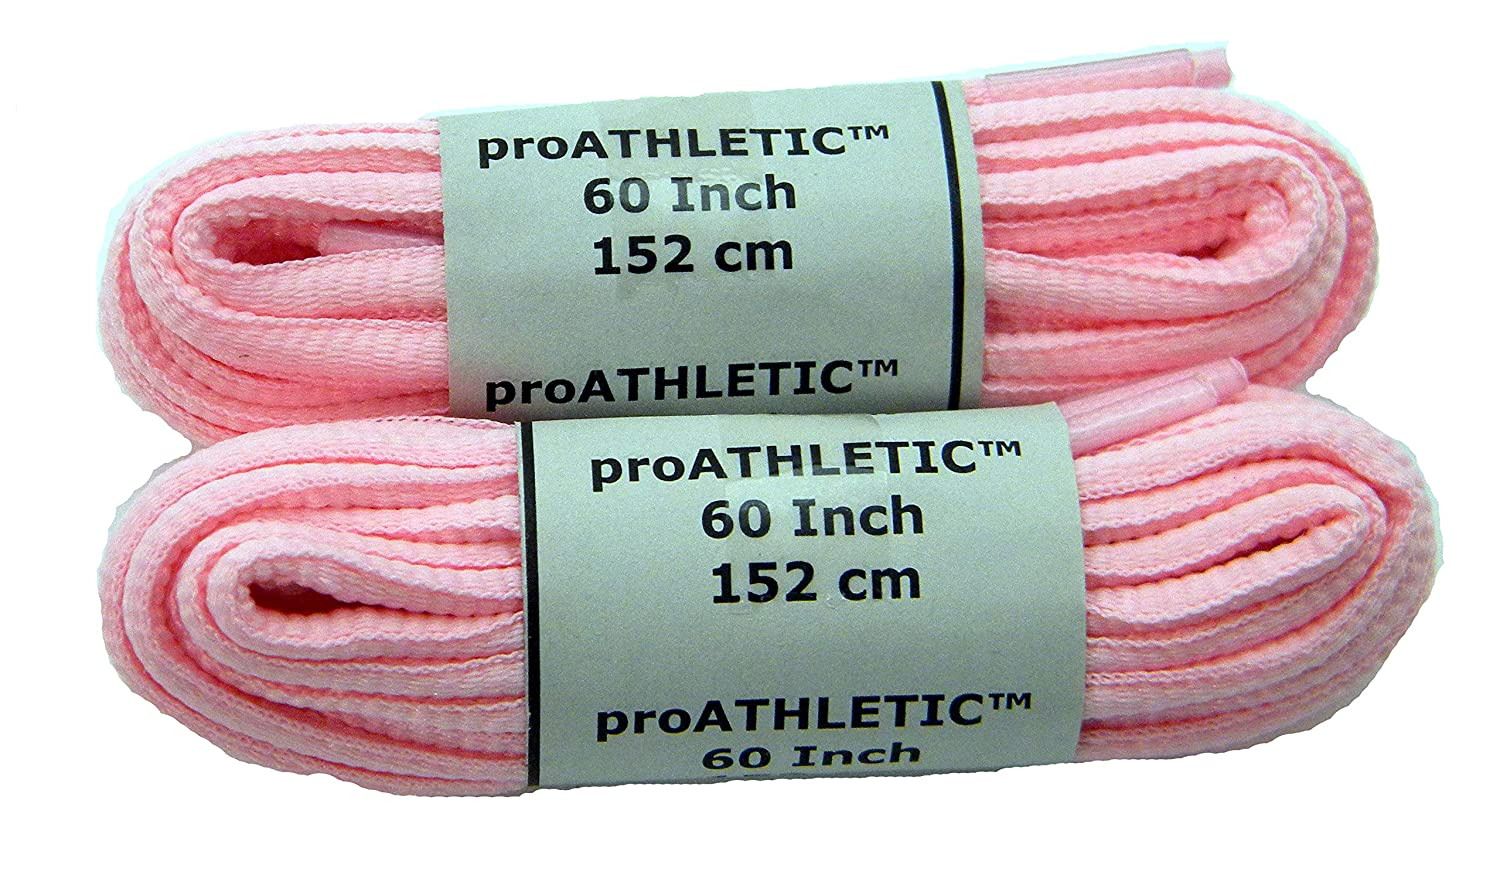 e566d29a5a4e7 Amazon.com  GREATLACES (2 Pair Pack proATHLETIC Oval Style Sneaker Shoelaces  Runner